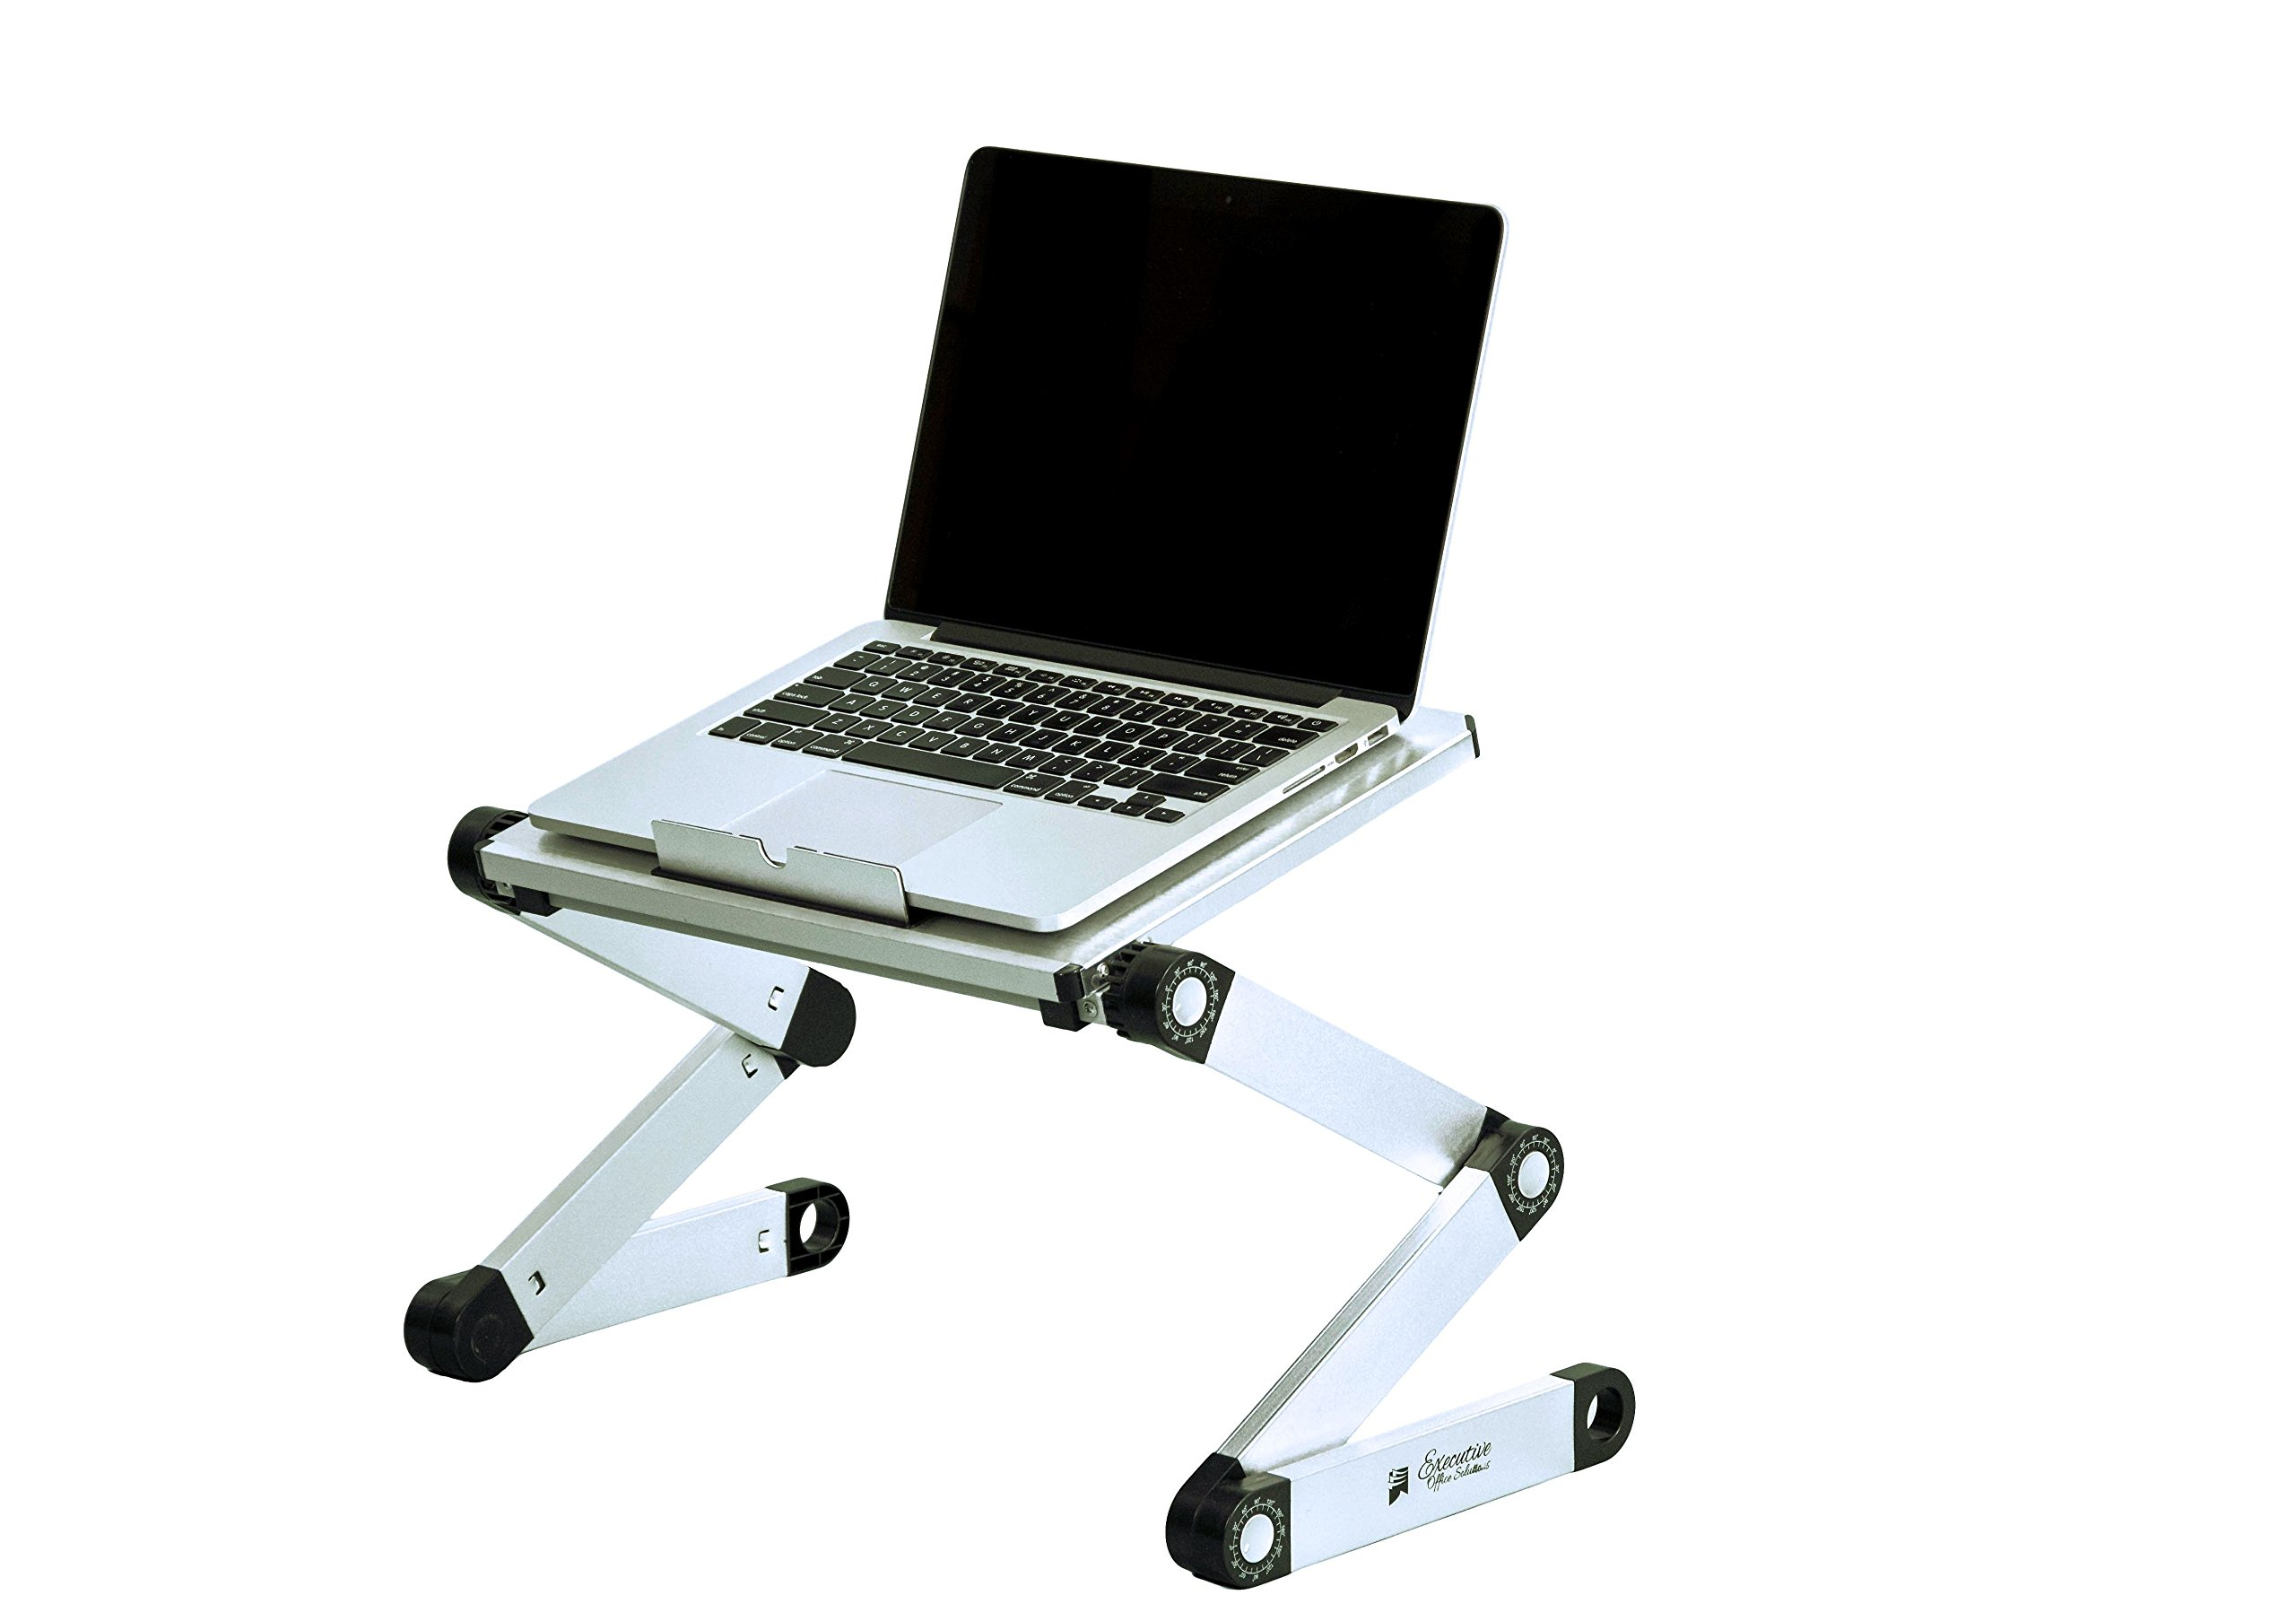 Portable Adjustable Aluminum Laptop Desk/Stand/Table Vented Notebook-Macbook-Ultra Light Weight Ergonomic TV Bed Lap Tray Stand Up/Sitting-Silver